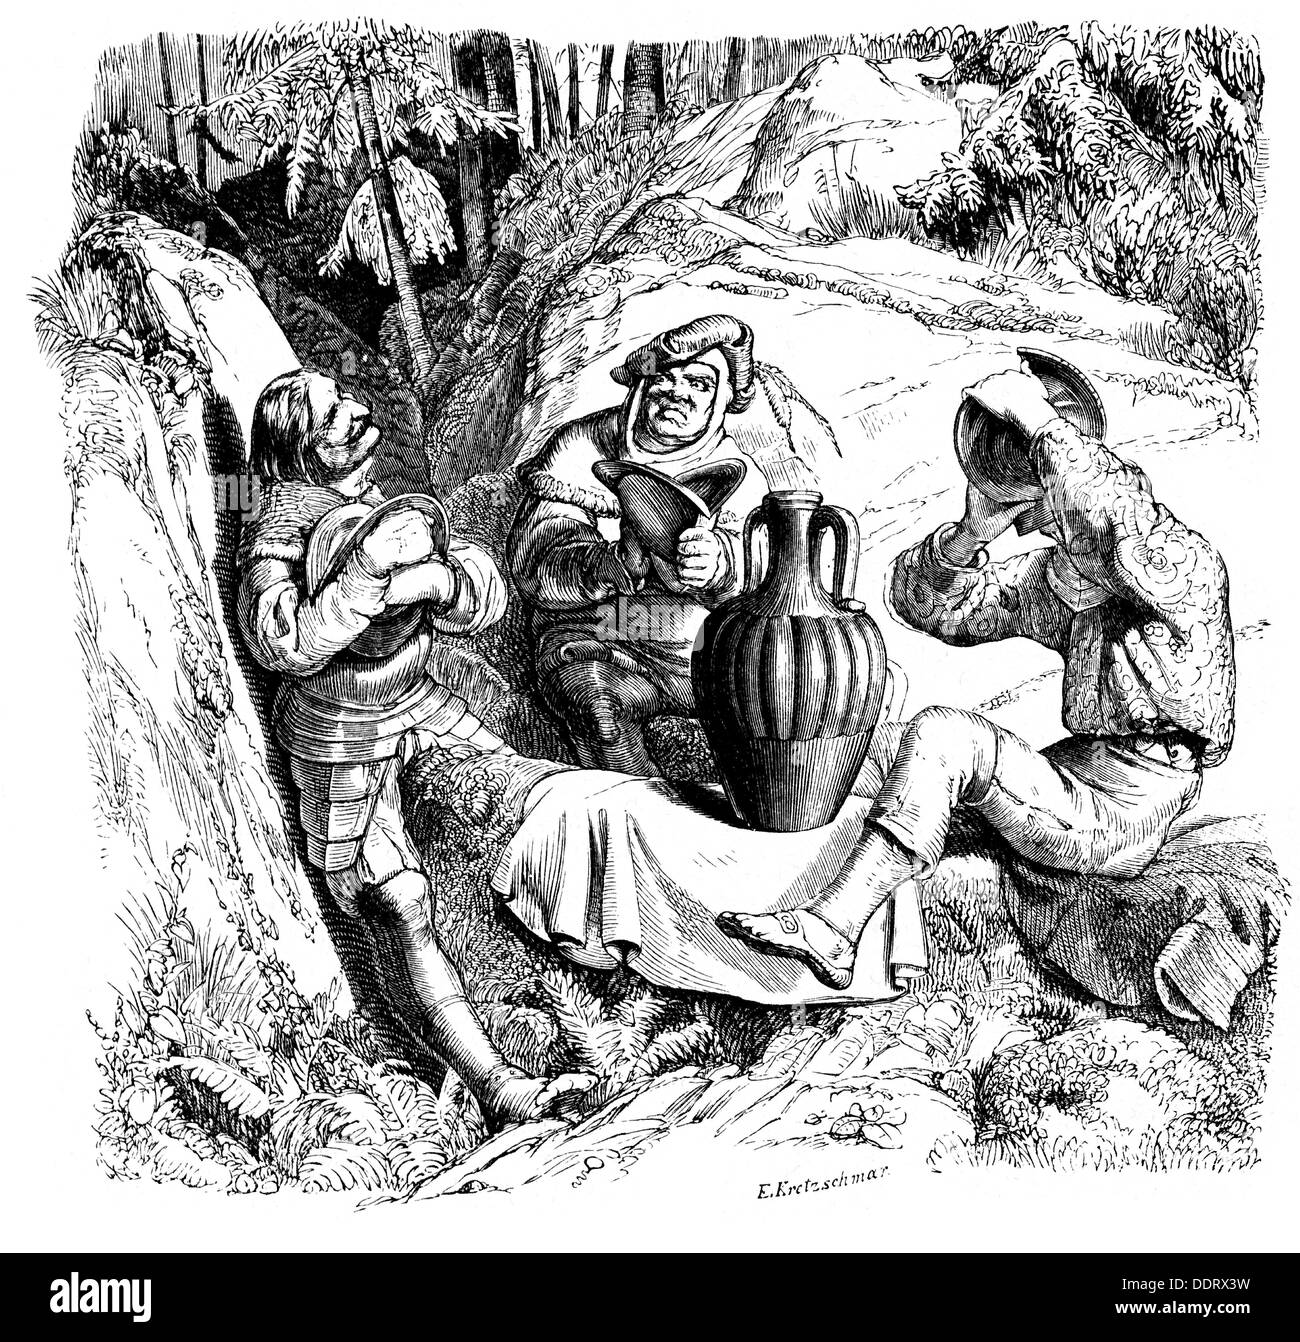 literature, fairy tales, 'Roland's Squires' by Johann Karl August Musäus (1735 - 1787), after drawing by Adolf Schroedter (1805 - 1875), wood engraving by E.Kretzschmar, 19th century, Additional-Rights-Clearences-NA - Stock Image